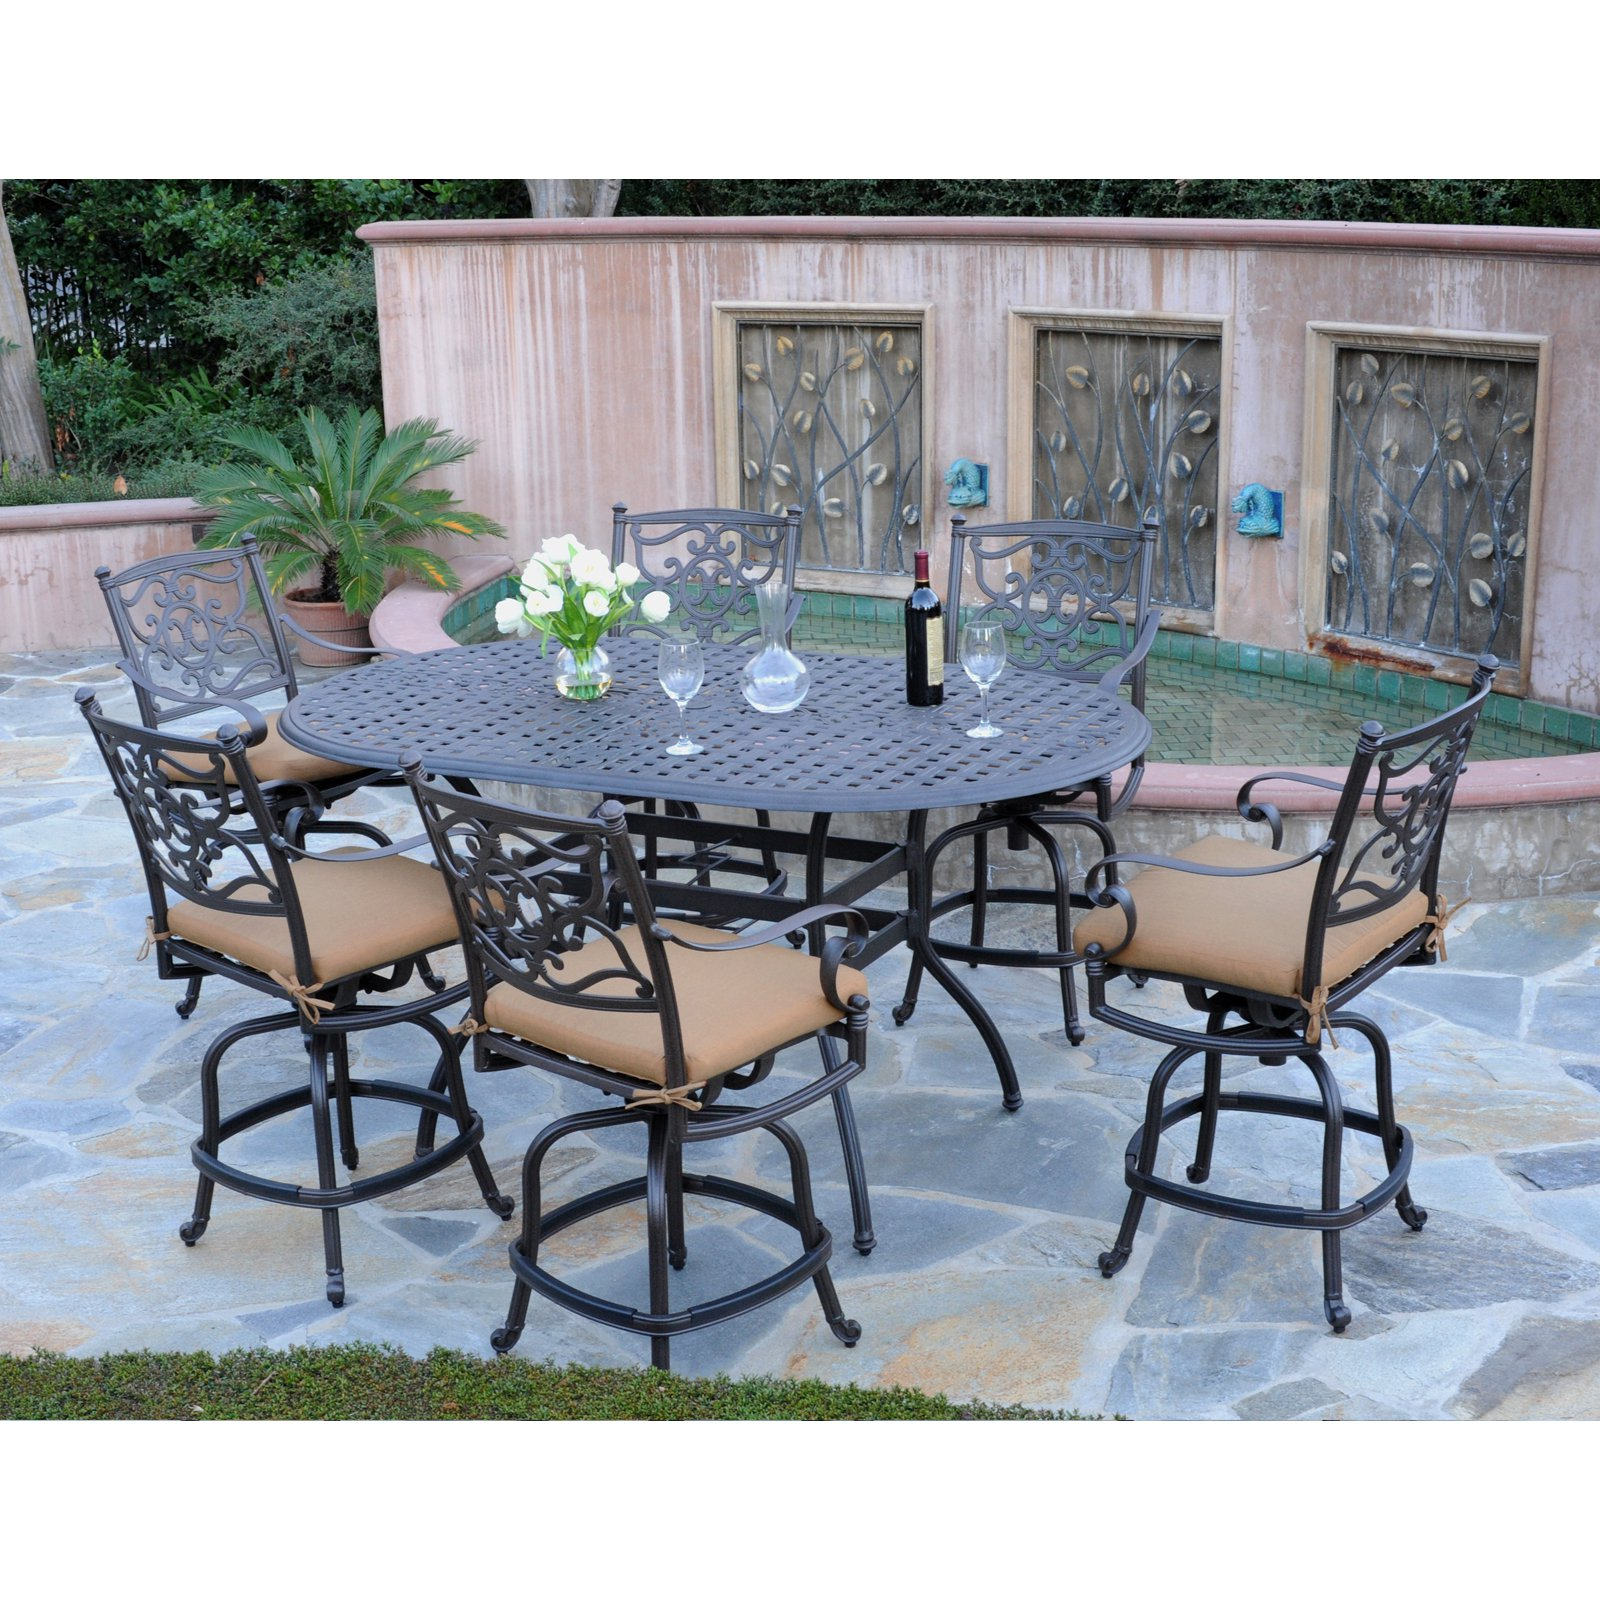 Patio Sets at Lowes | Square Patio Dining Table | Bar Height Patio Sets